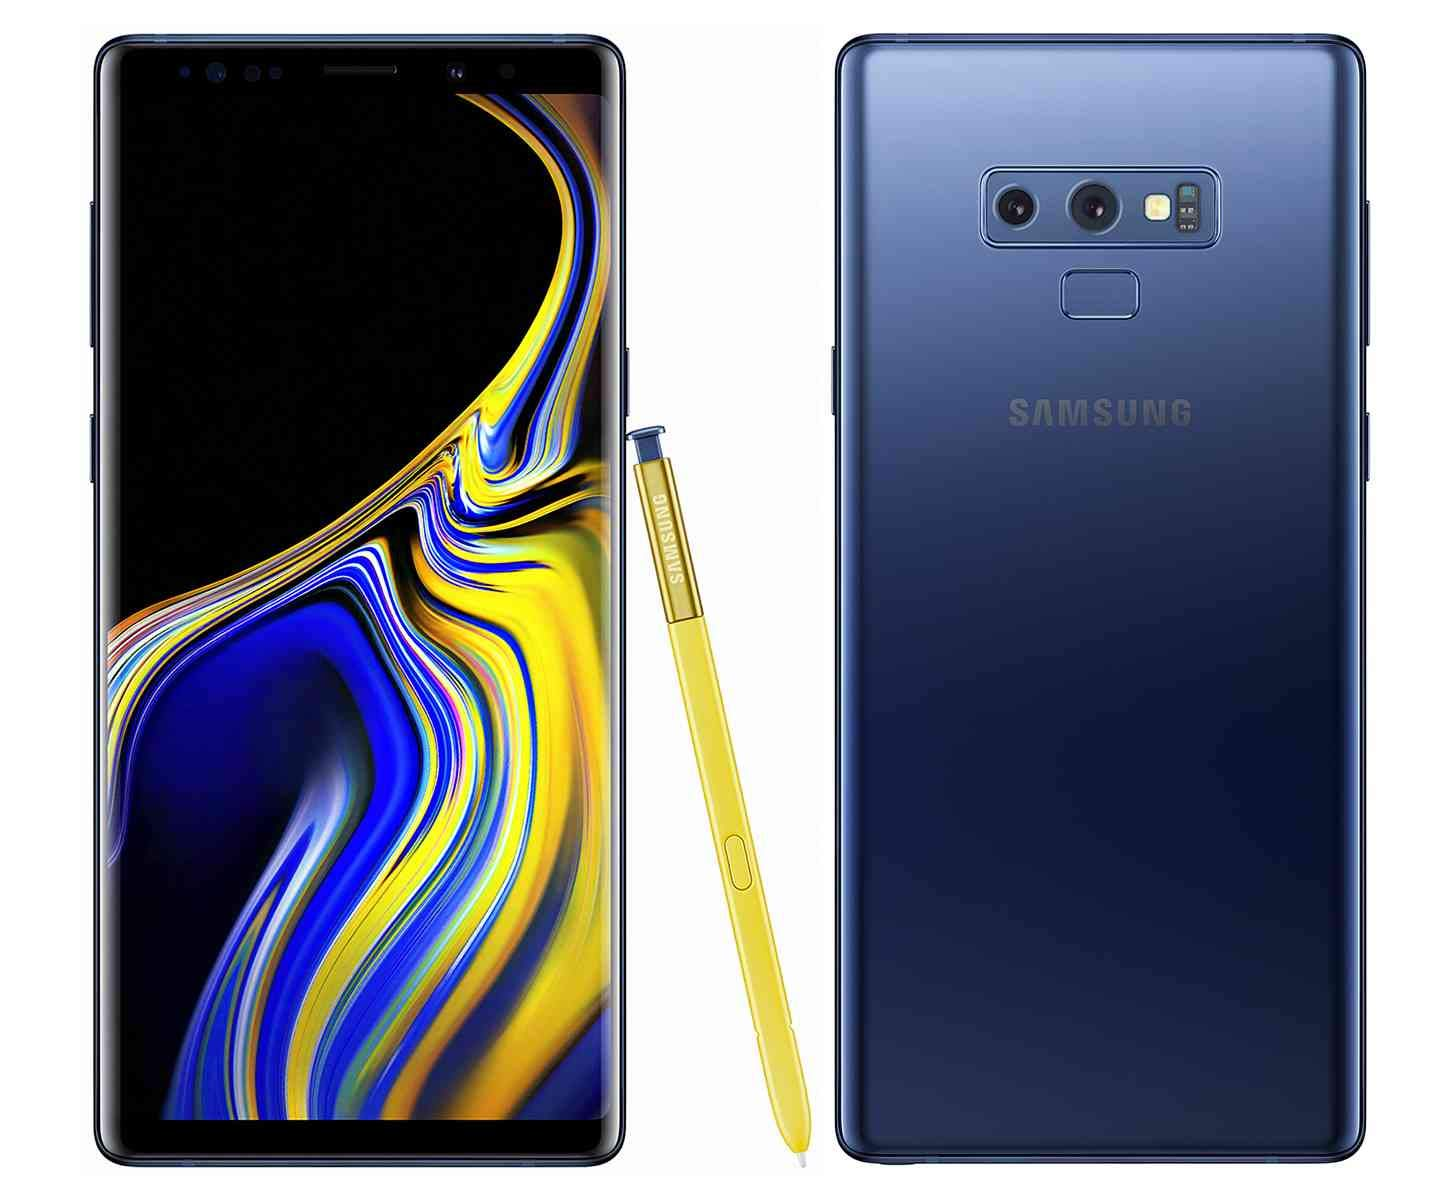 Samsung Galaxy Note 9 SM-N960U 128GB Ocean Blue - Verizon